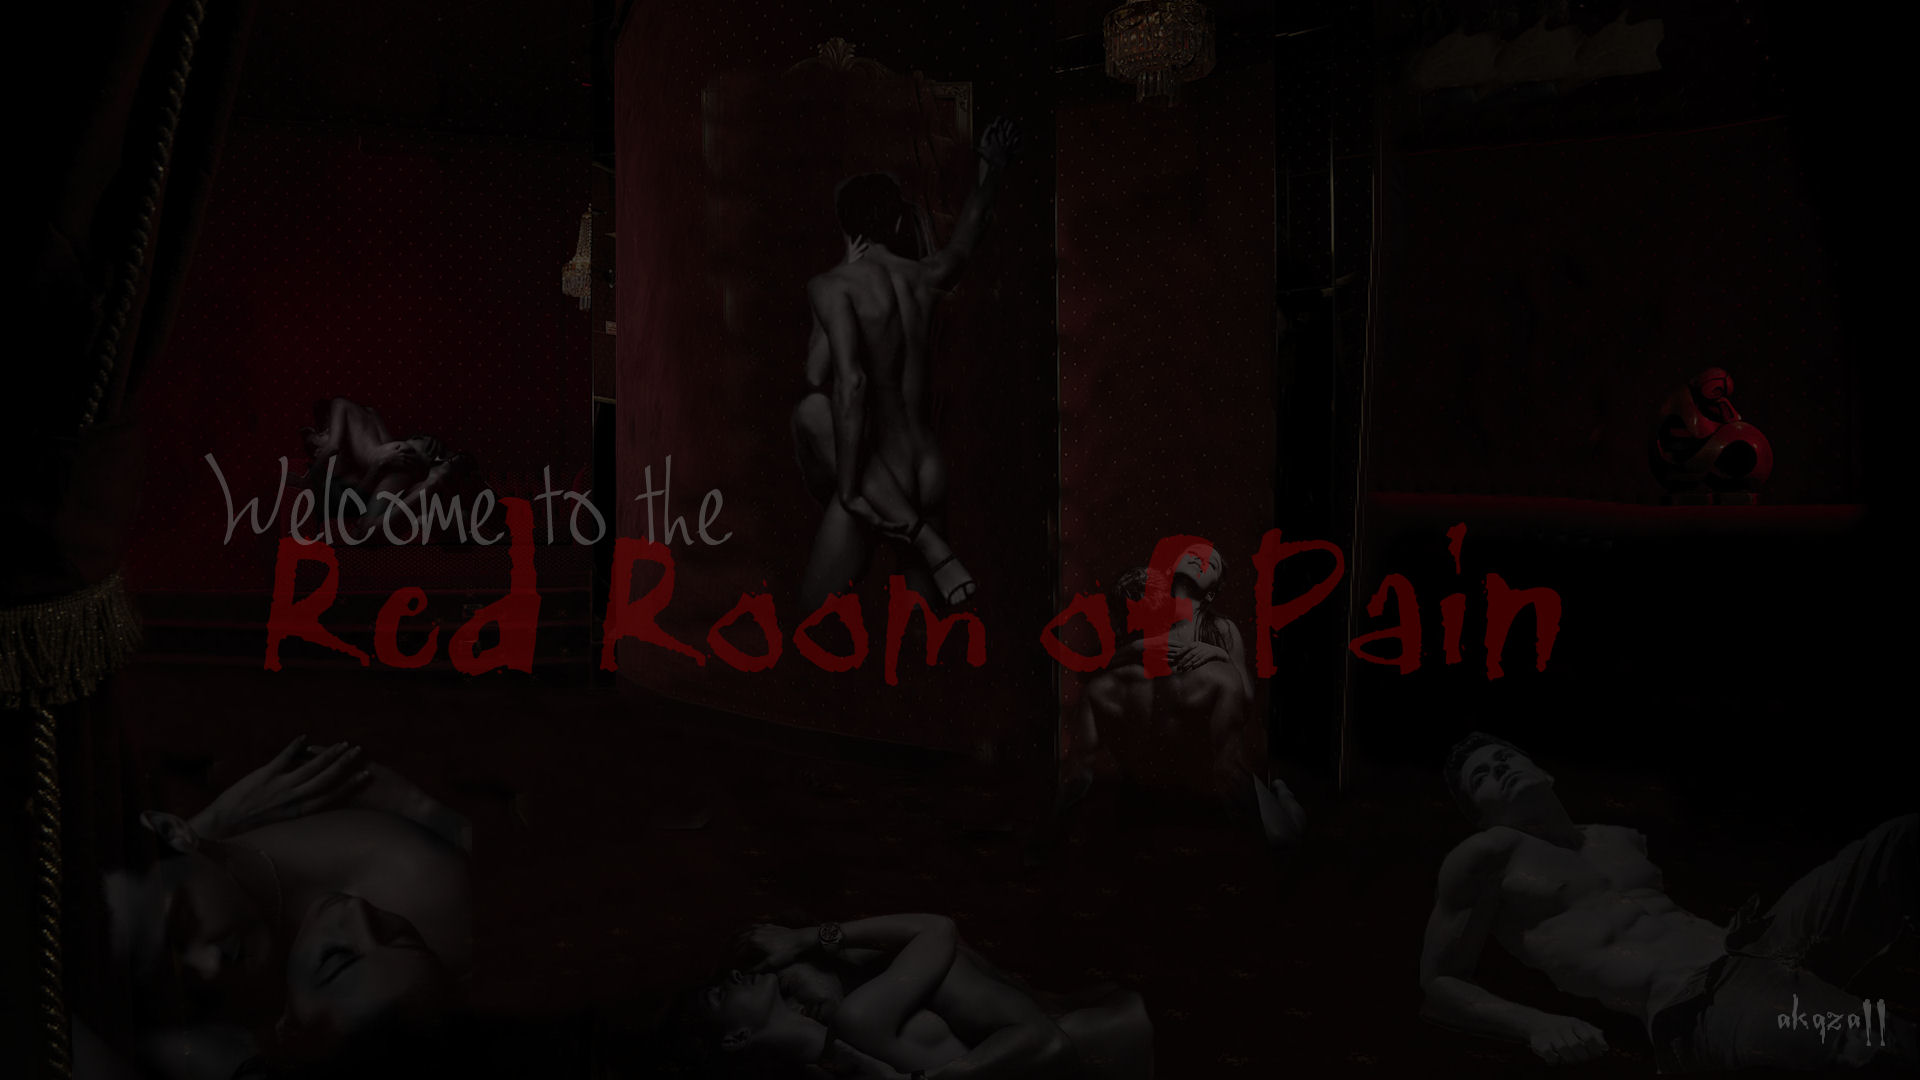 Fifty Shades Red Room of Pain - Welcome